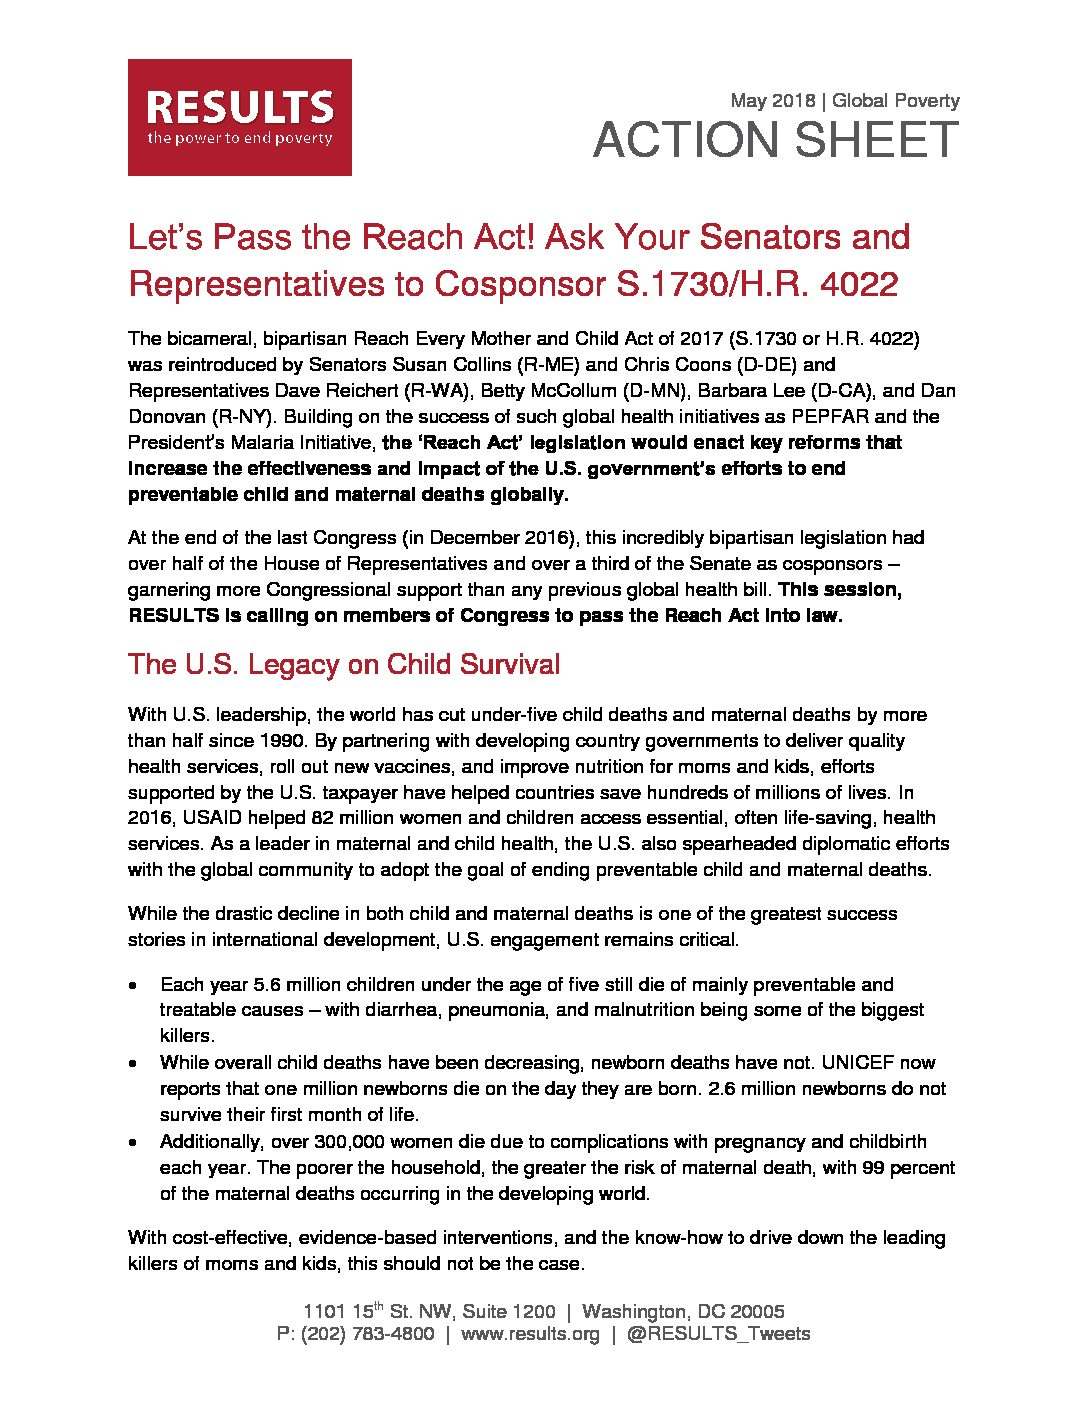 May 2018 Global Action Sheet Lets Pass The Reach Act